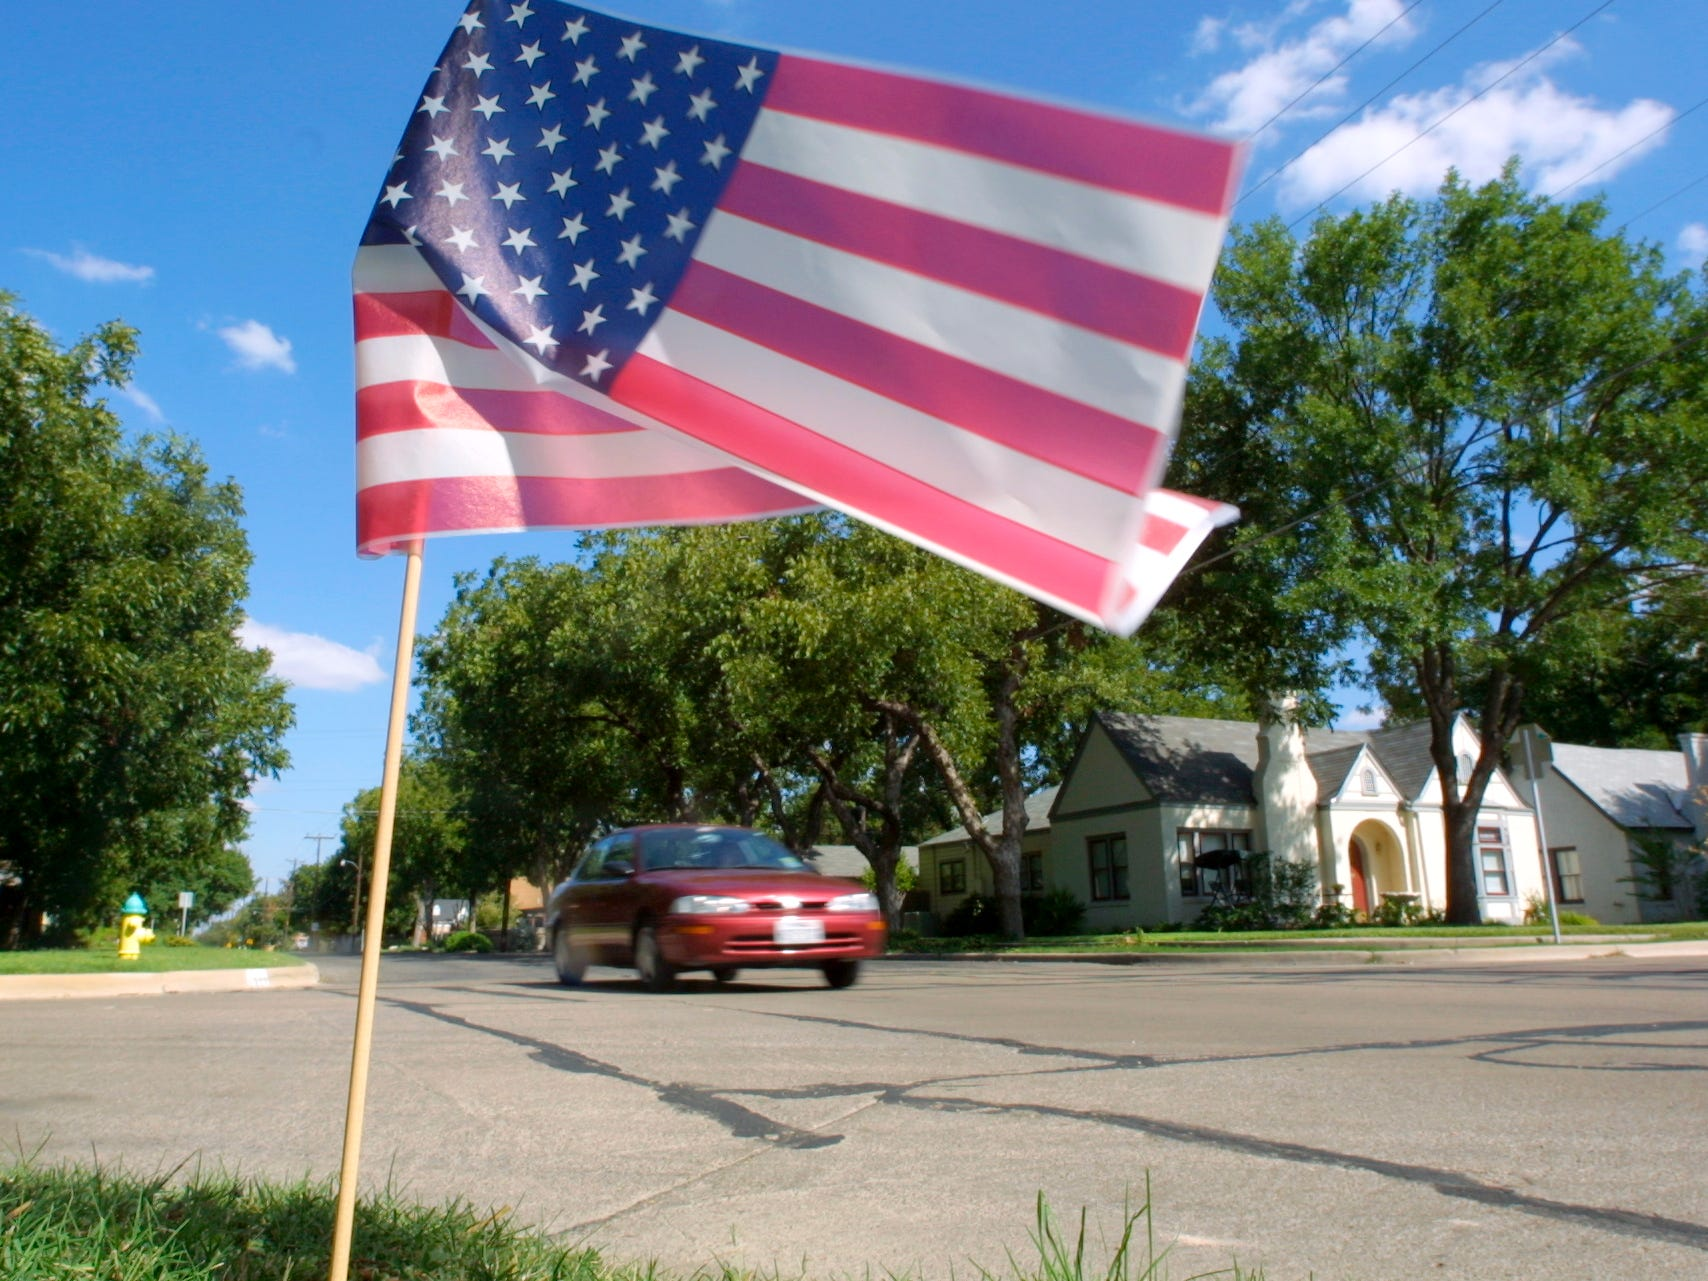 An American Flag stands in a yard at Mackenzie and W. Avenue J in San Angelo on Sept. 12, 2001. Residents began flying flags in support of their country after the previous day's terrorist attacks.